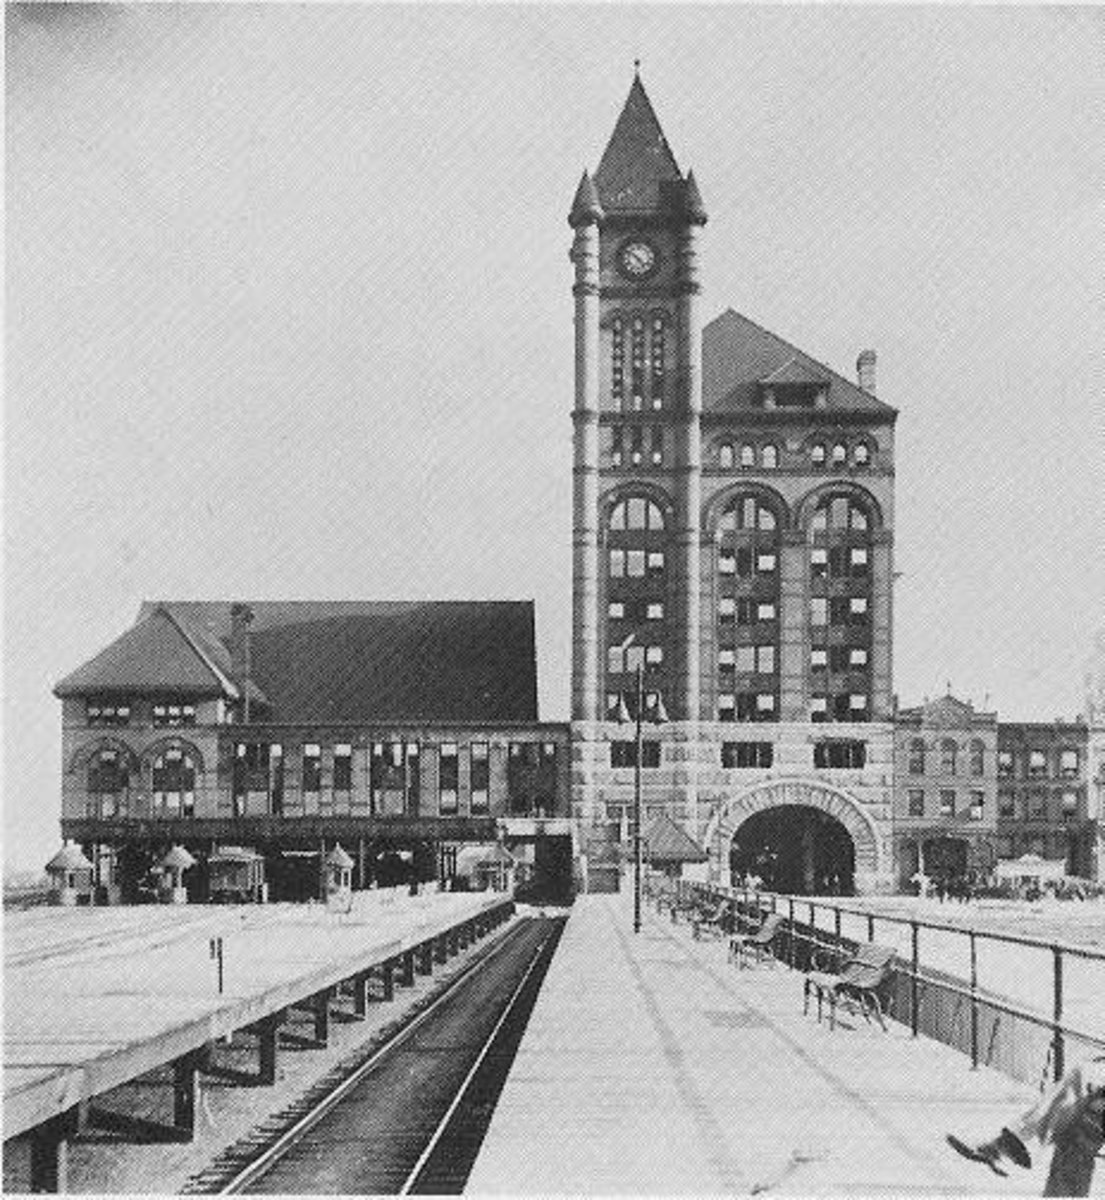 Illinois Central Station as seen in an 1894 photo.